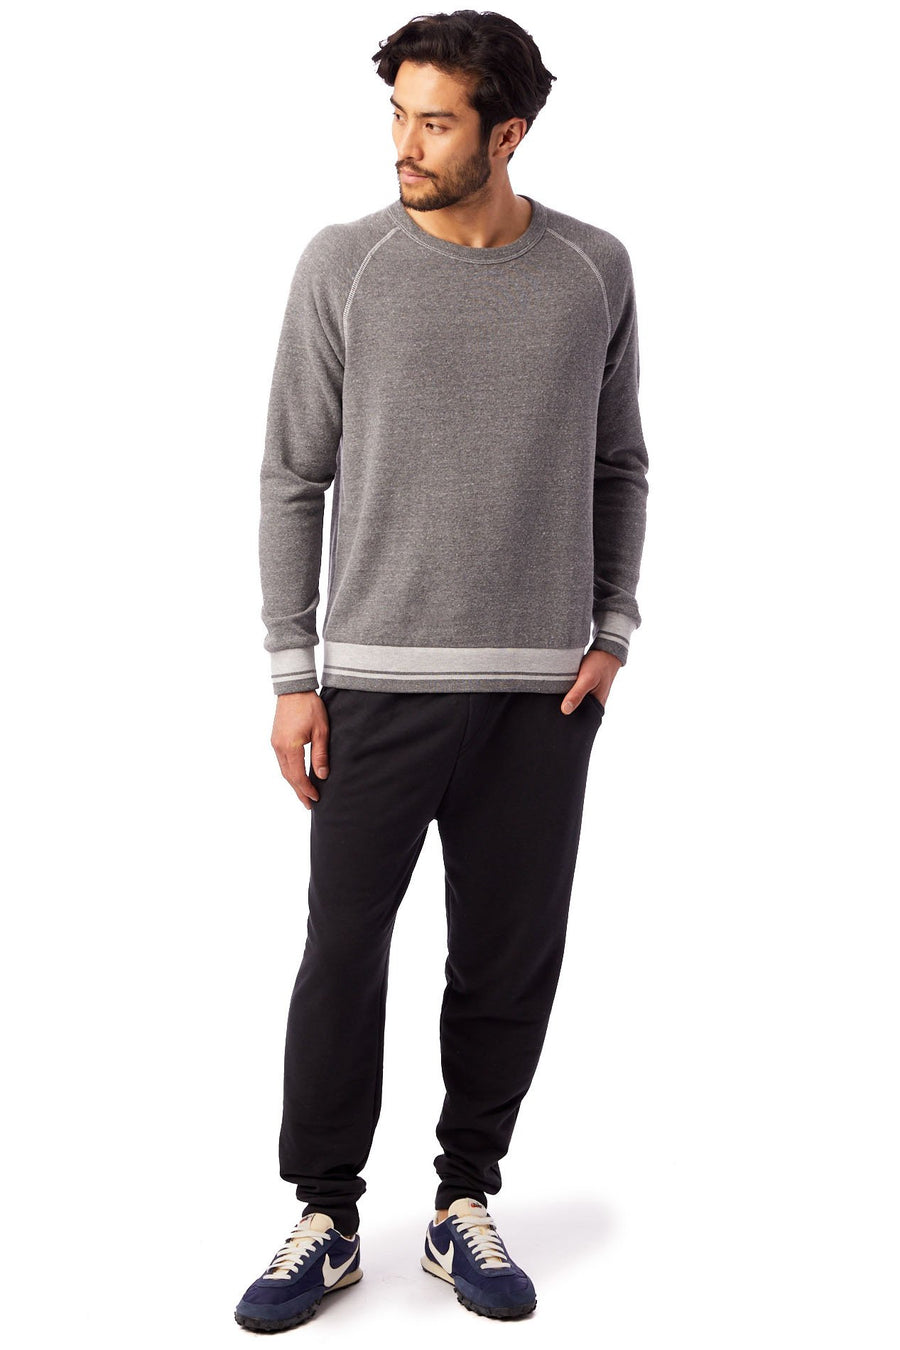 Champ Eco-Fleece Ivy League Sweatshirt - Eco Grey - Pavilion